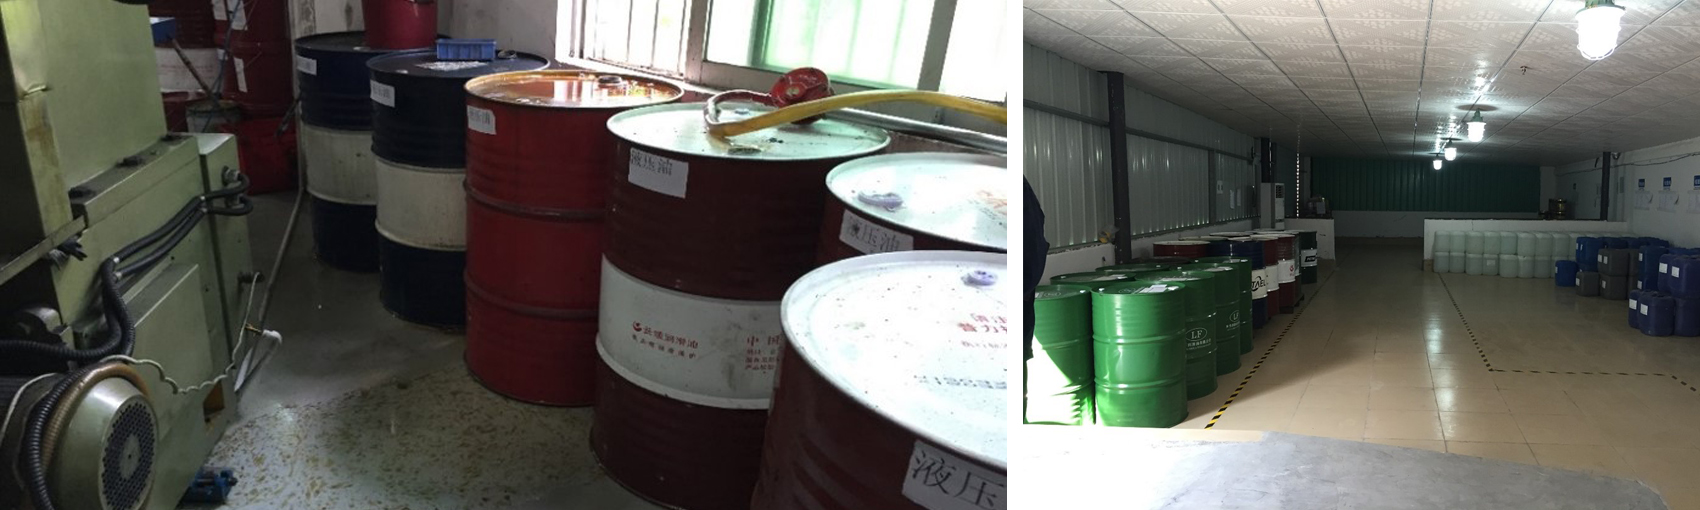 chemical_storage_before_after_1700w.jpg